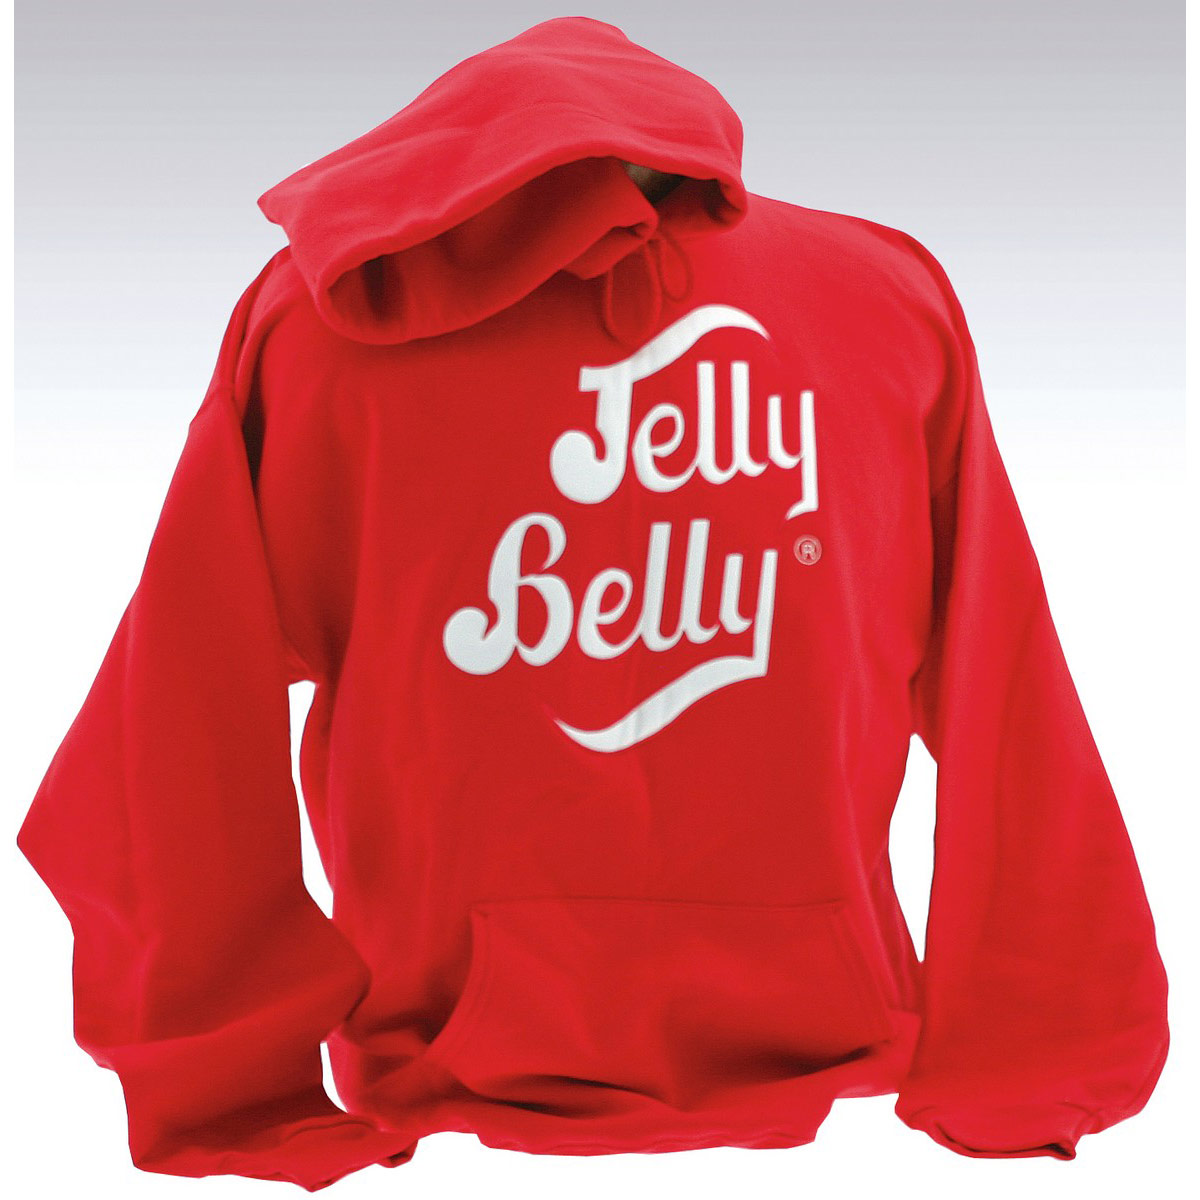 Jelly Belly Red Hooded Sweatshirt – Adult Medium